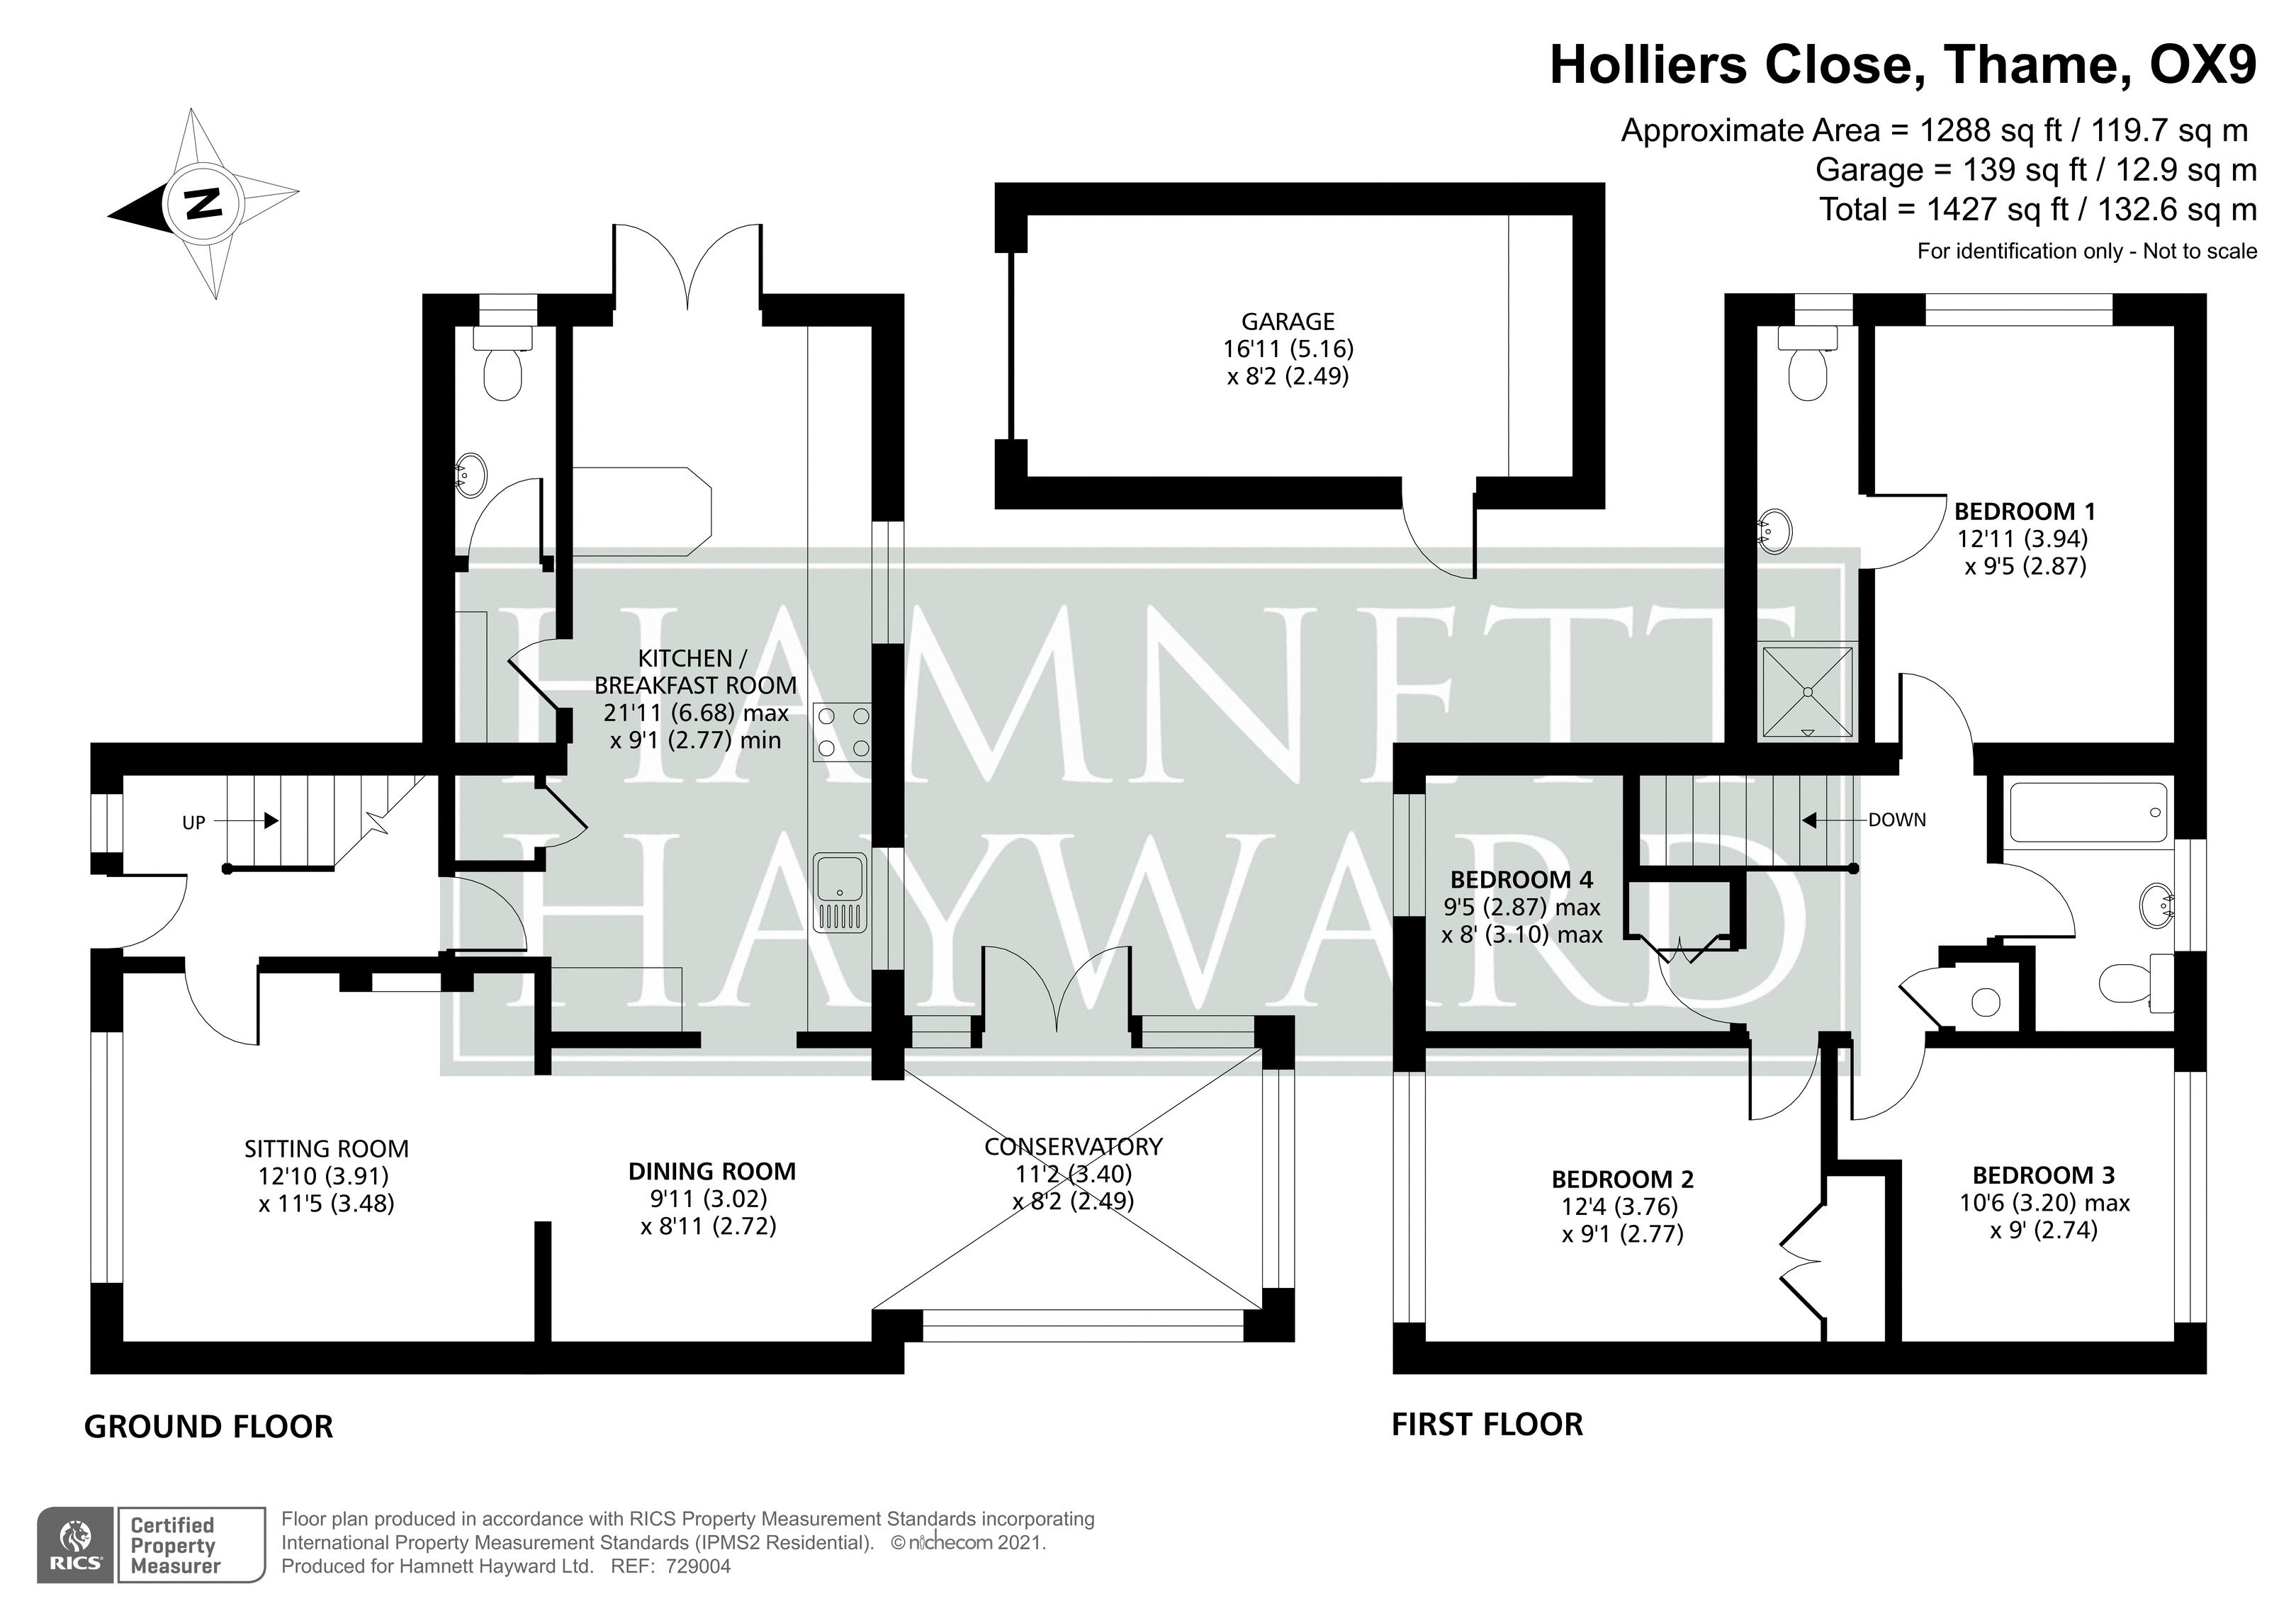 Holliers Close